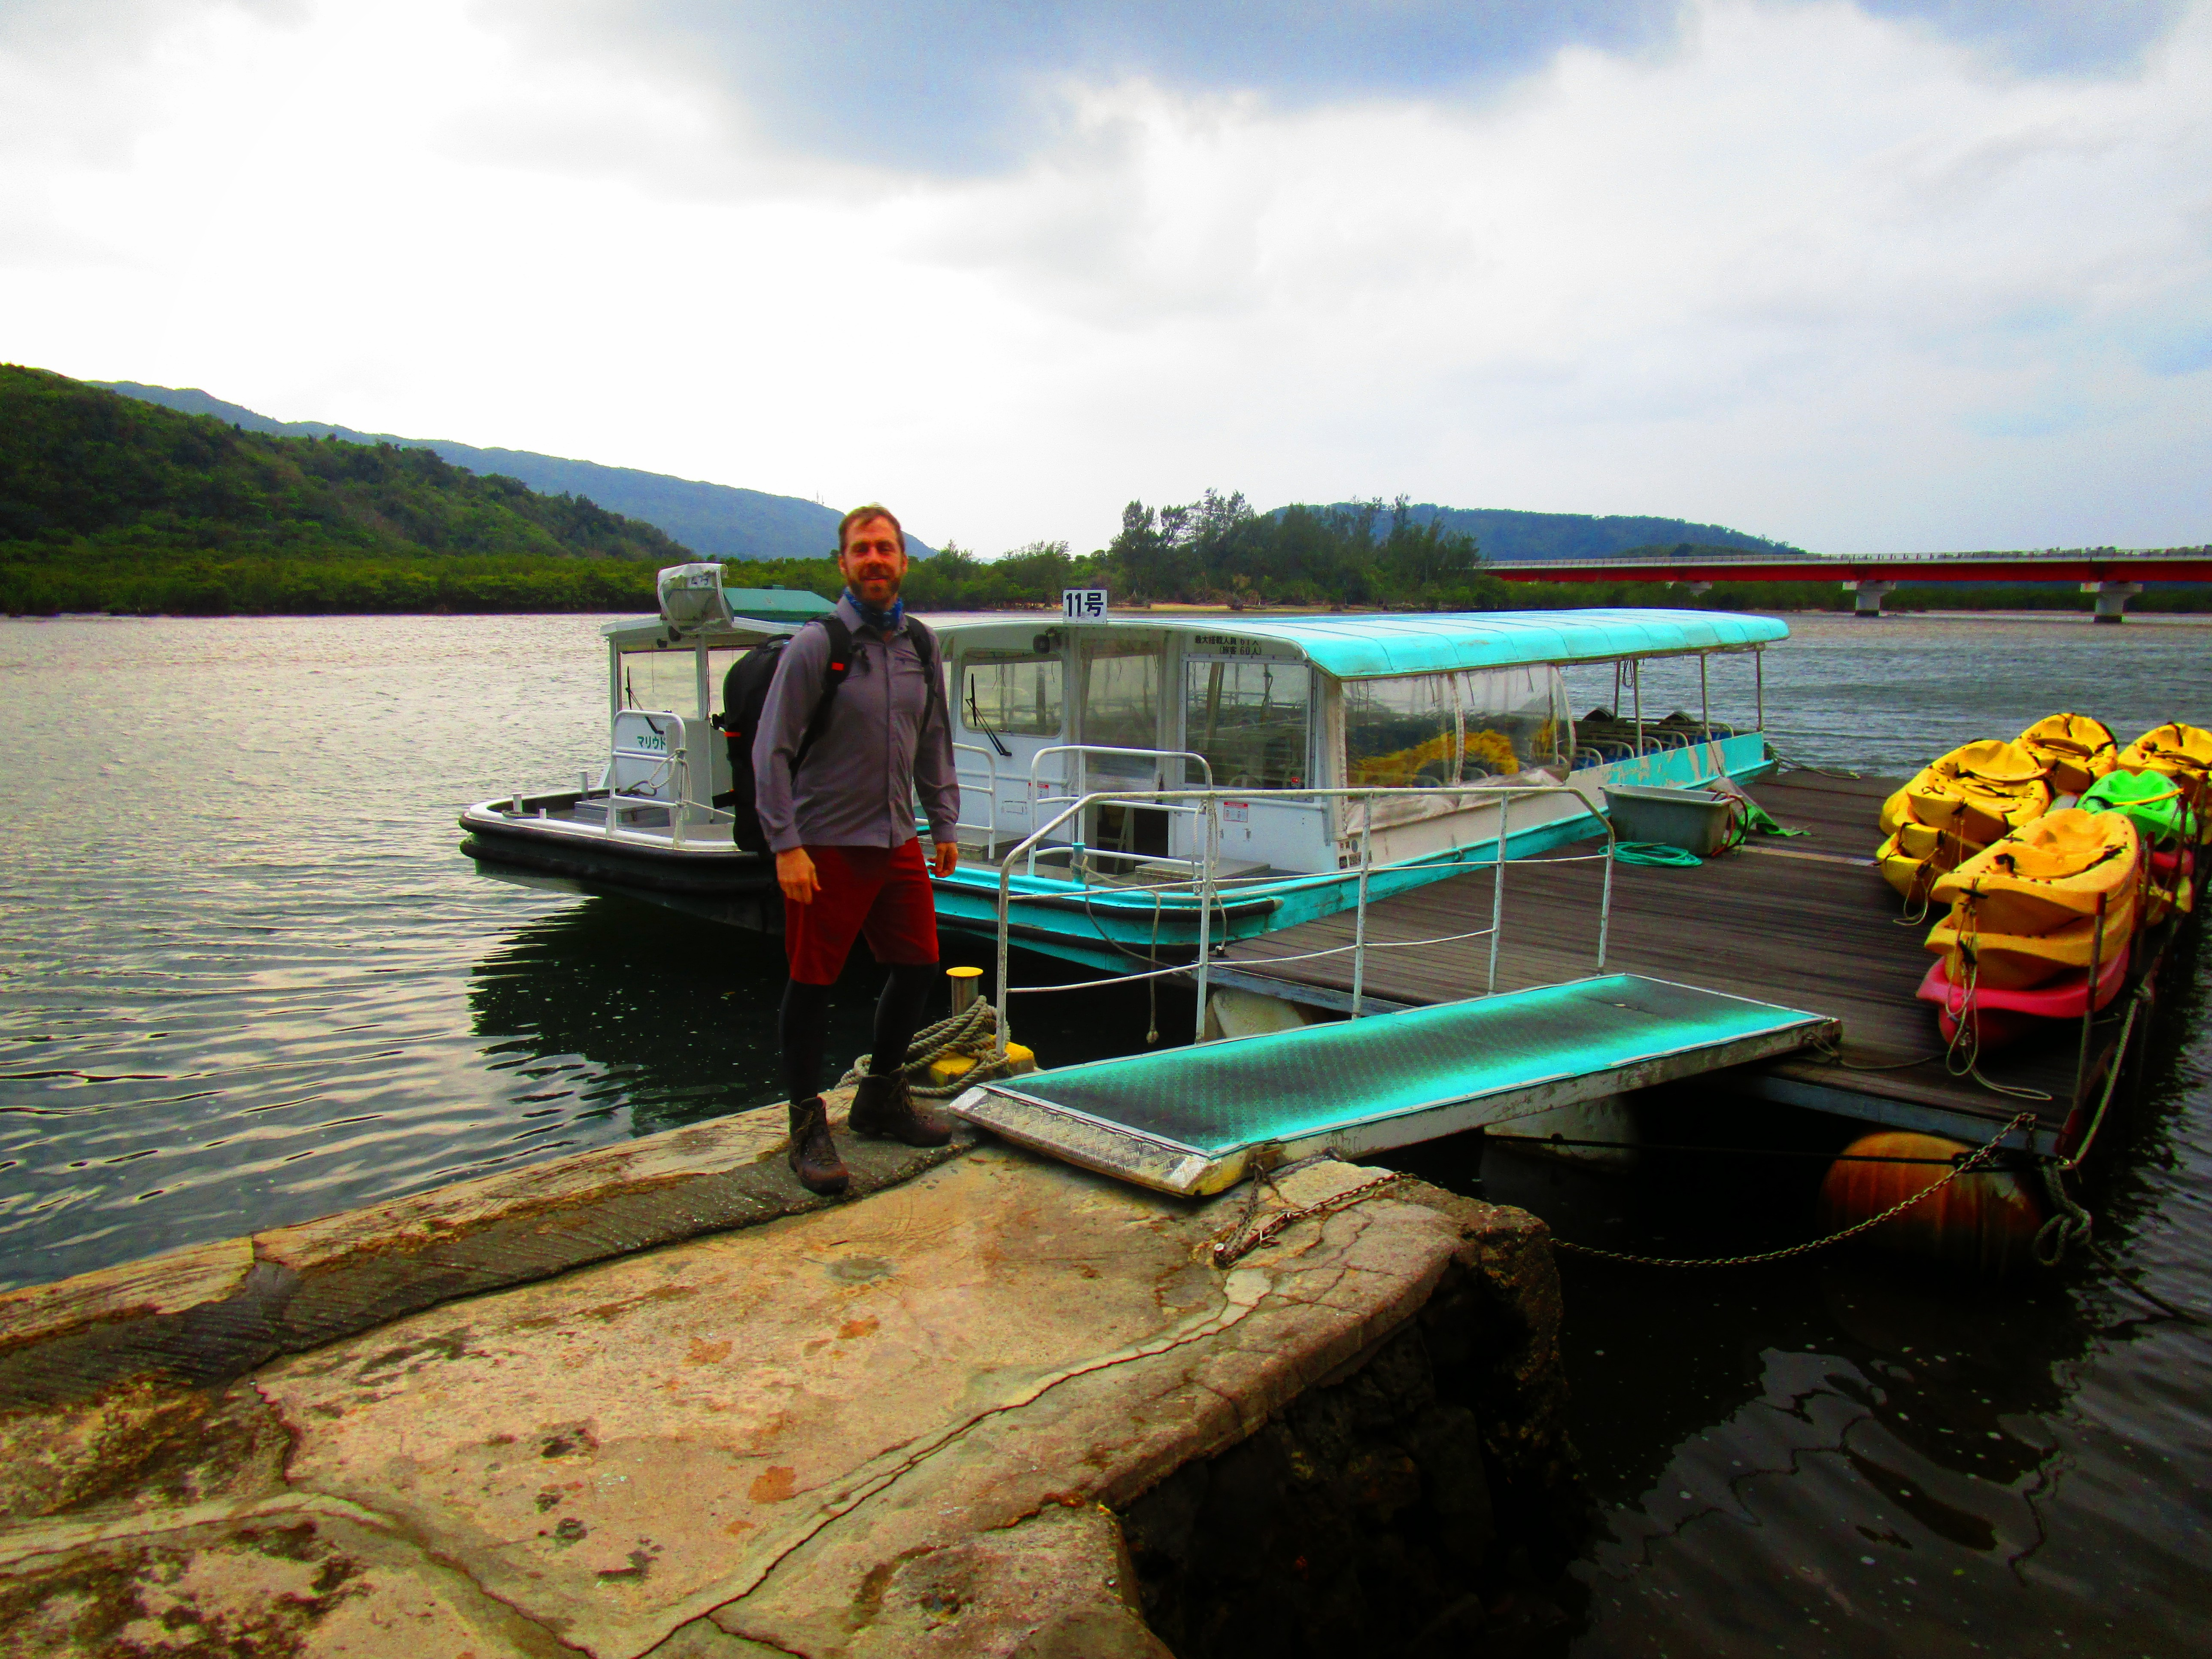 Mark getting ready to board the boat which will take us to the trail head.